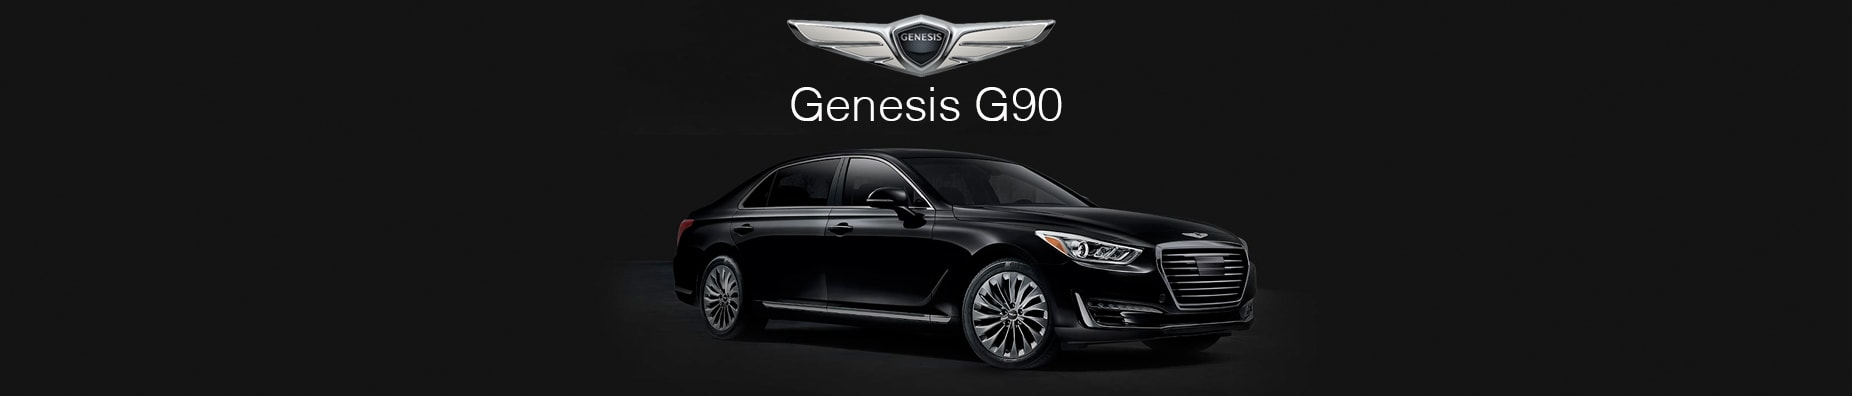 2017 Genesis G90 | New 2017 Genesis G90 For Sale